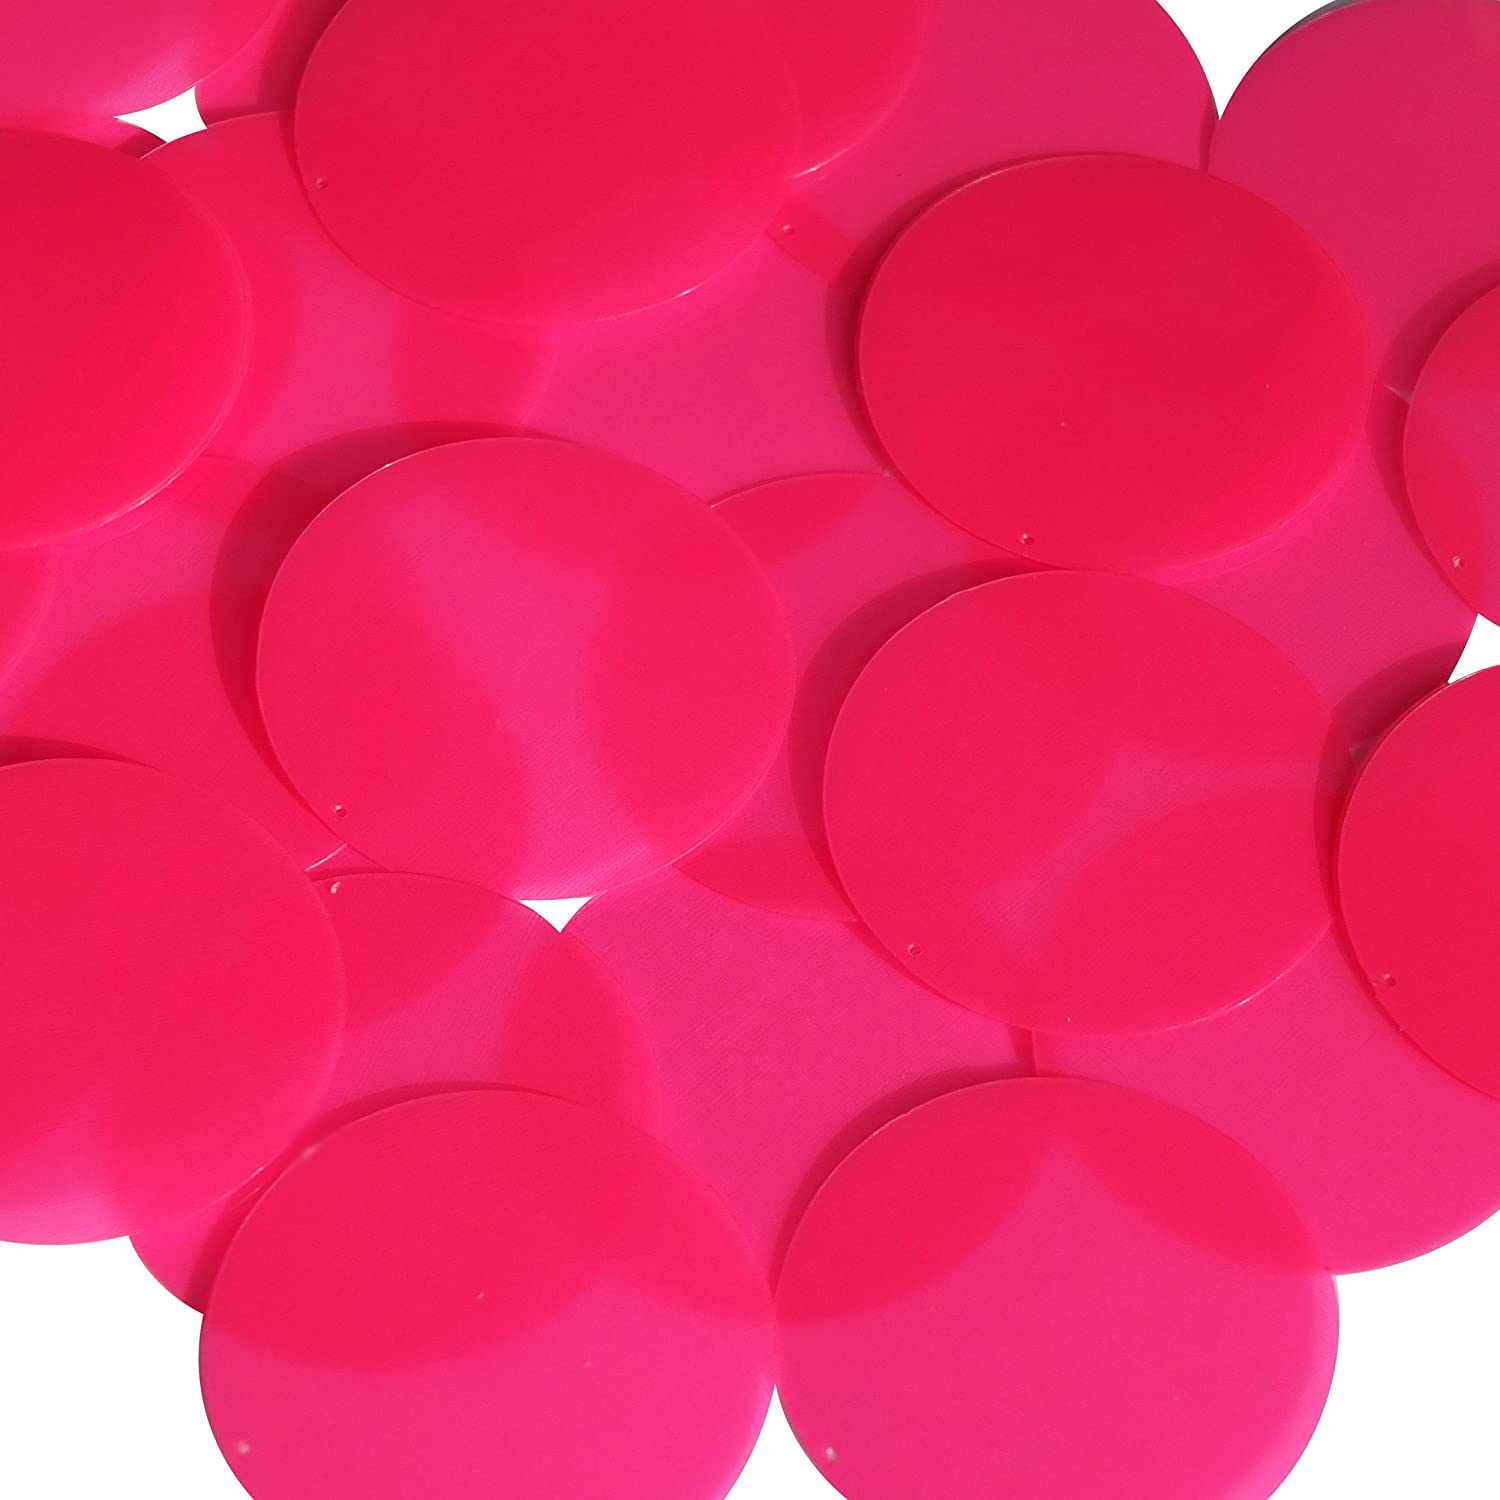 Round Sequin 40mm Pink Fluorescent Transparent Glossy and Matte Duo Two Sided Couture Paillettes